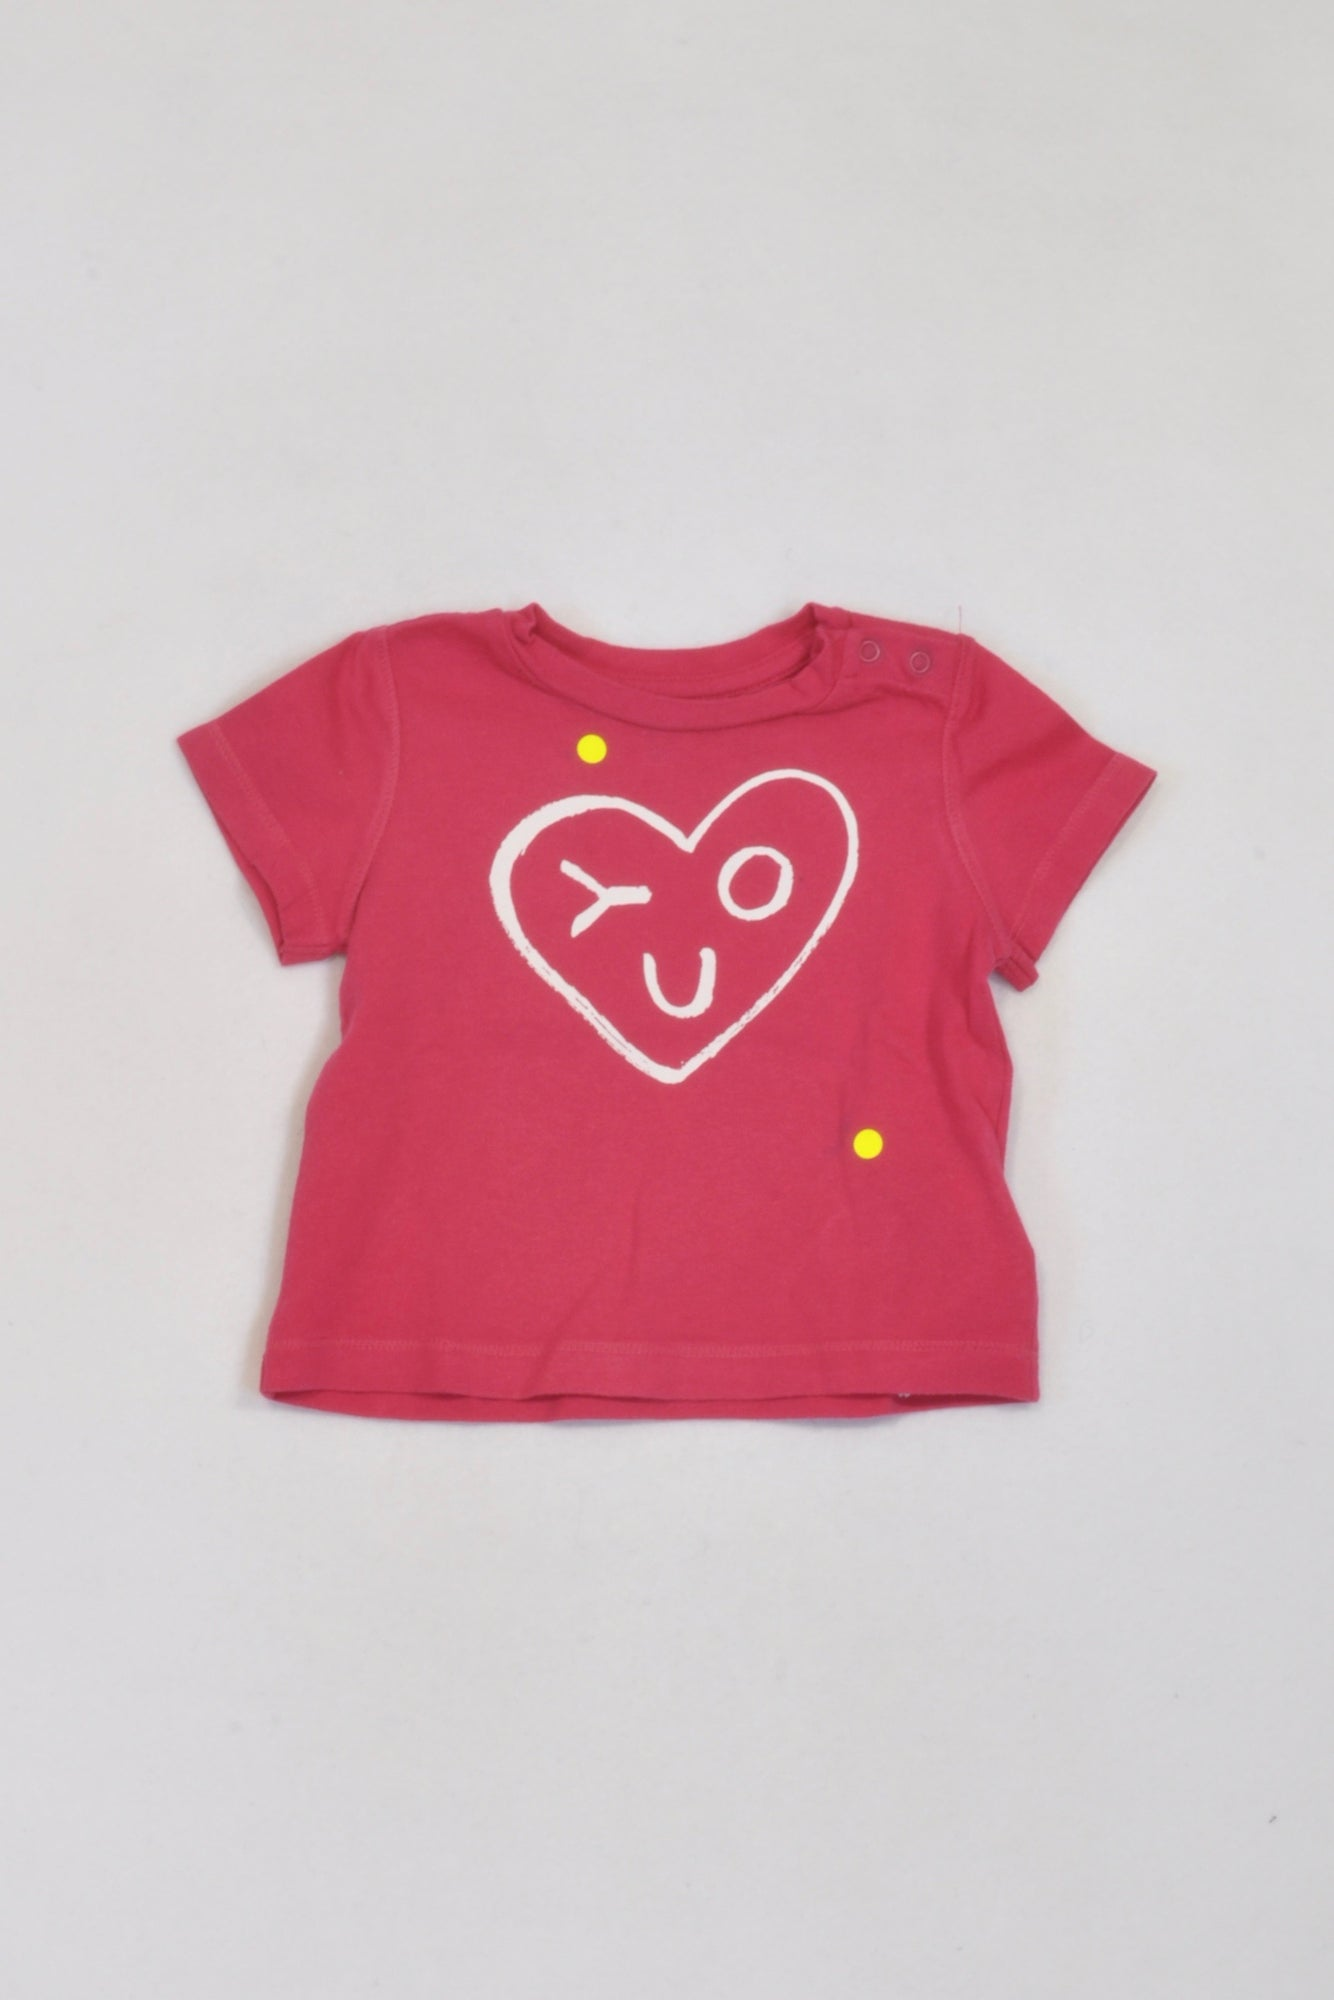 Gap Cerise Love You T-shirt Girls 3-6 months